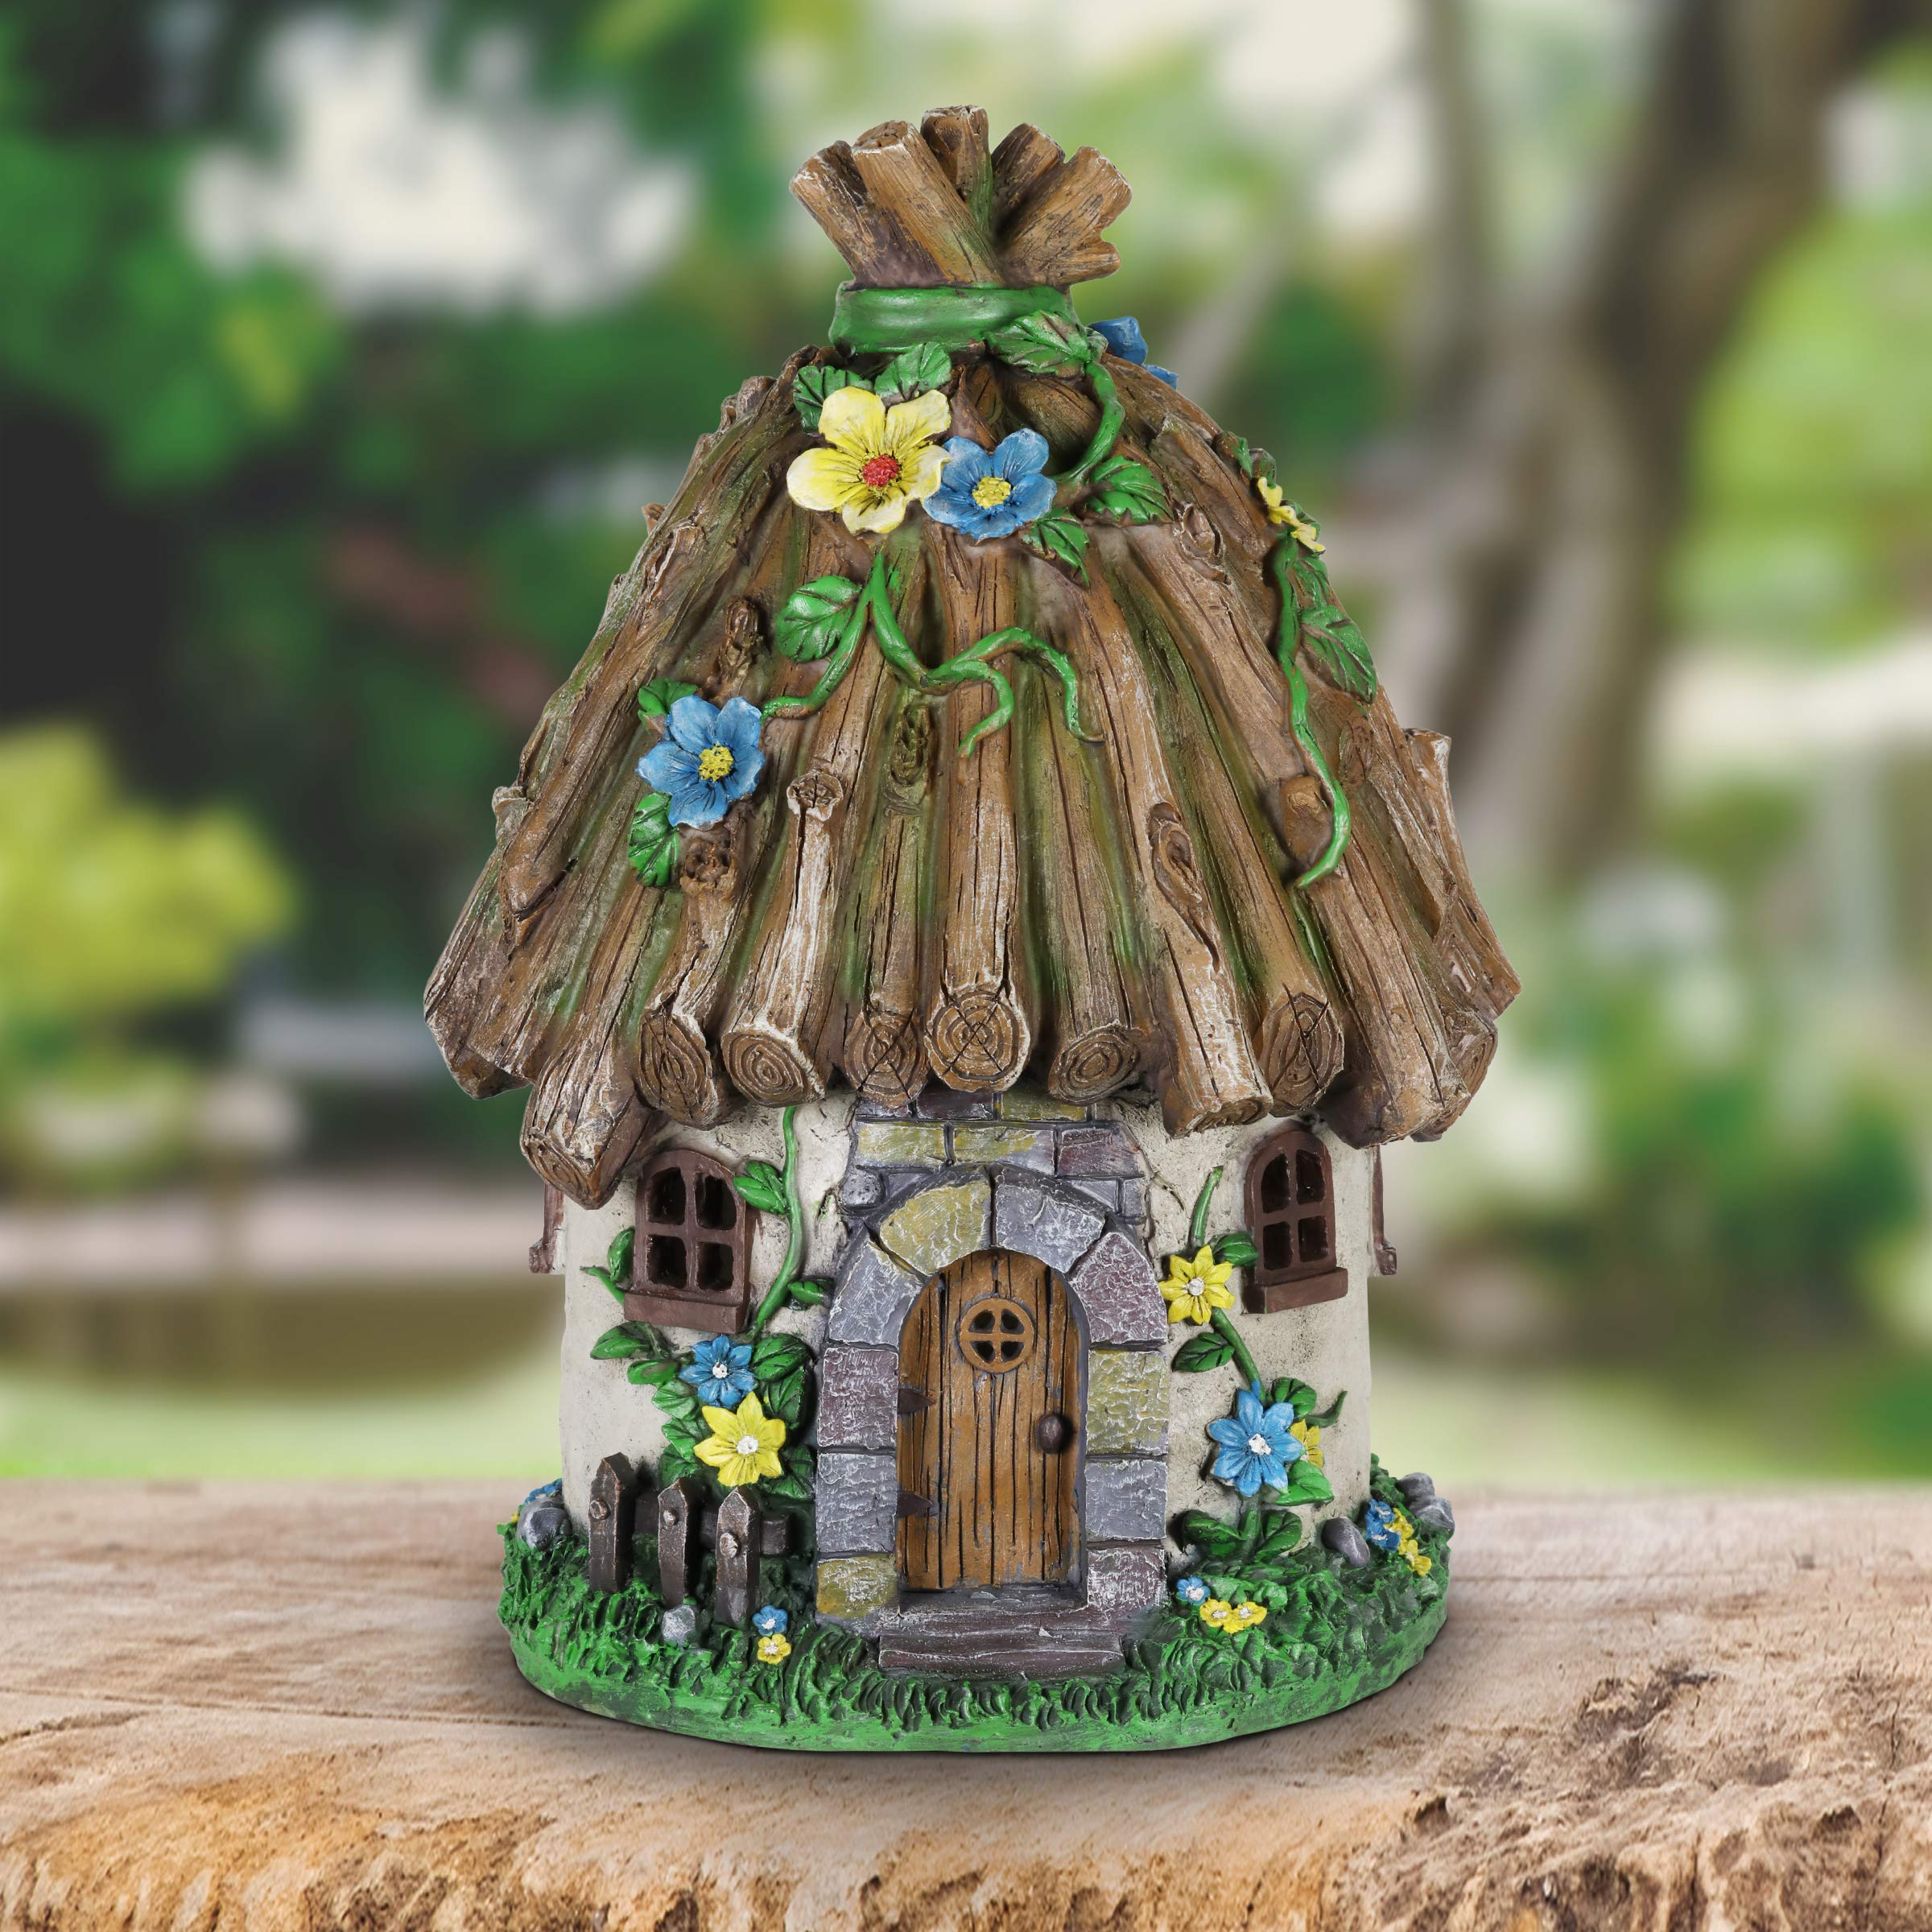 Exhart Twigs Roof Fairy House Outdoor Decor - Fairy Cottage Resin Statue with Solar Garden Lights, Miniature Fairy Hut Solar Home Decor for a Magical Fairy Garden, 9'' L x 9'' W x 15'' H by Exhart (Image #3)